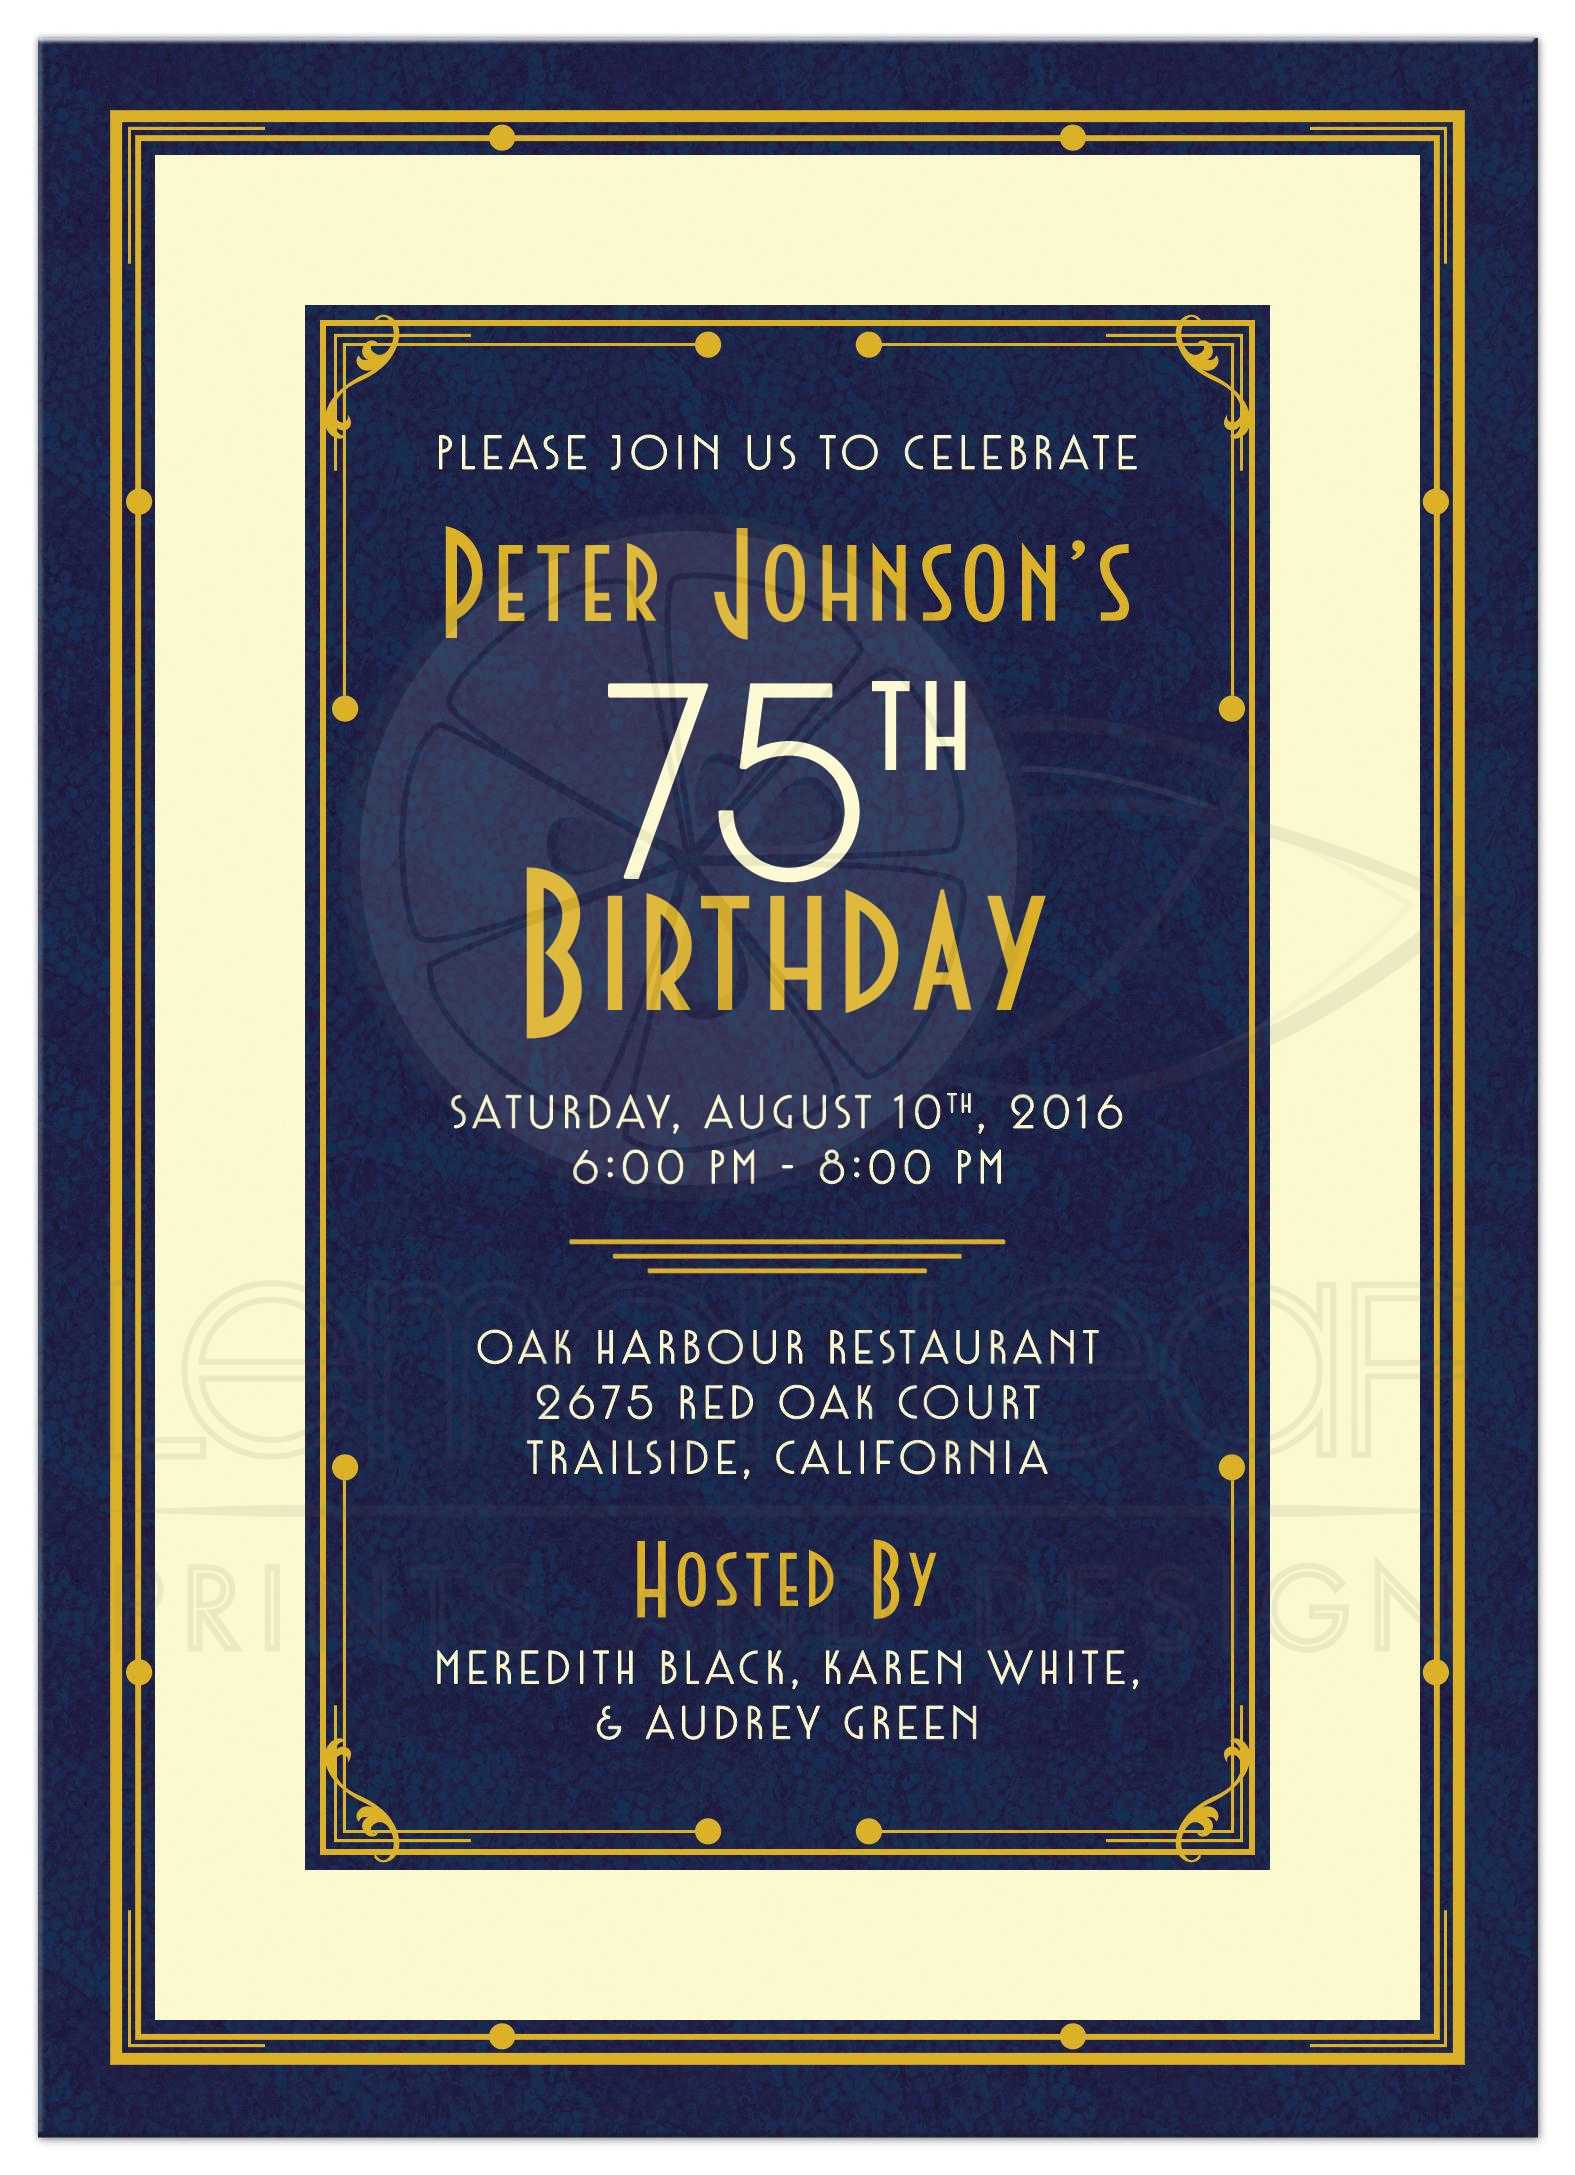 Home Decor Party Business Man S 75th Birthday Invitation Art Deco Navy Blue And Gold